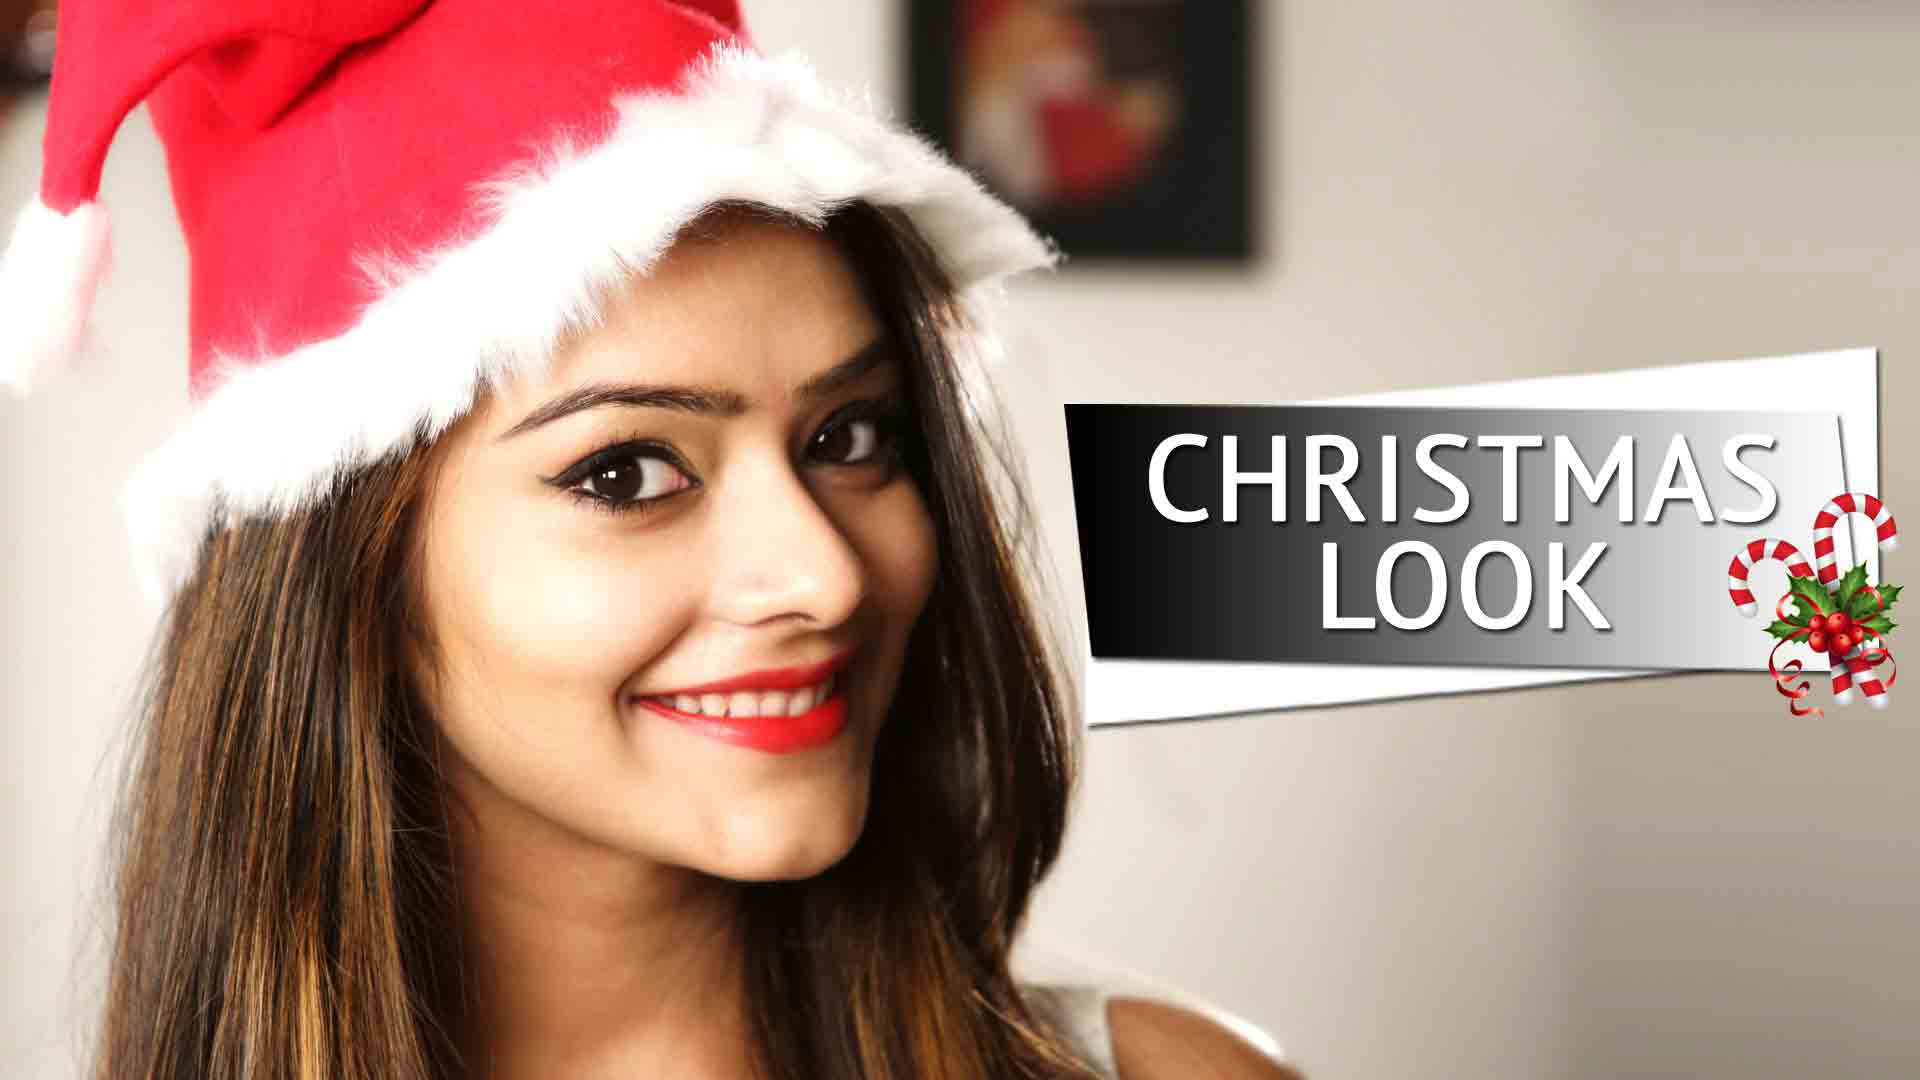 Christmas Makeup Ideas For Women In 2020